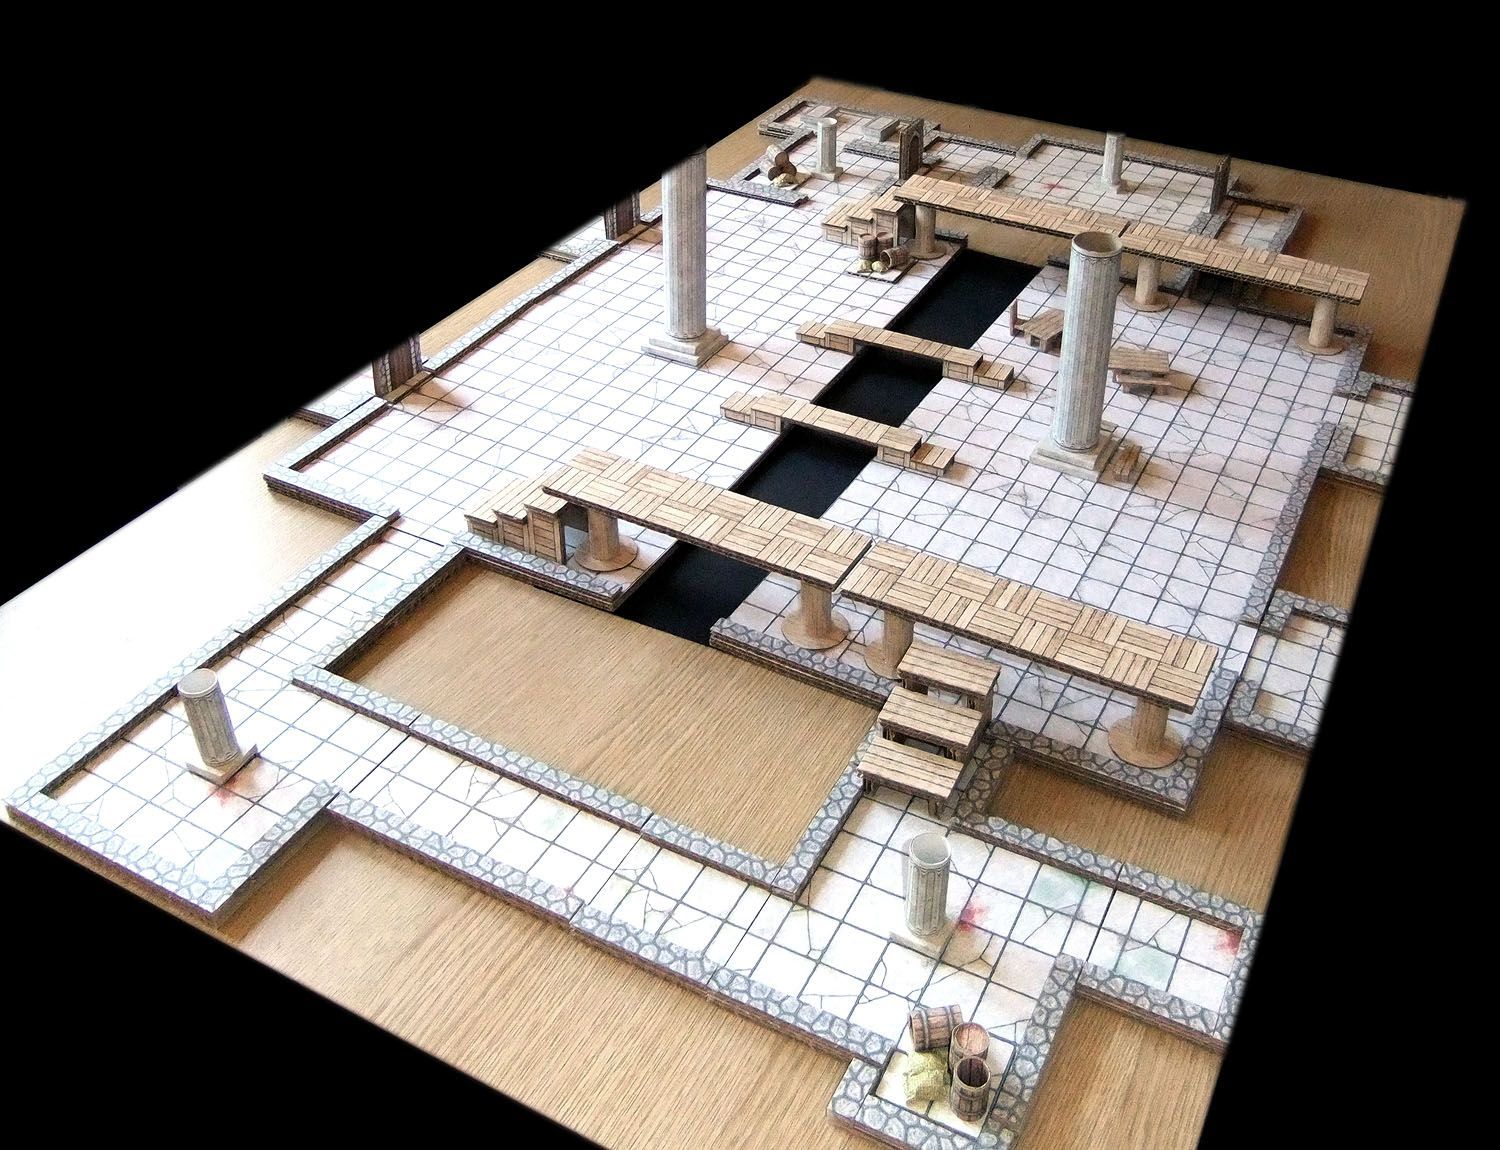 picture about 3d Printable Dungeon Tiles titled Pin by means of Katy upon DD Terrain, Structures, and Equipment inside of